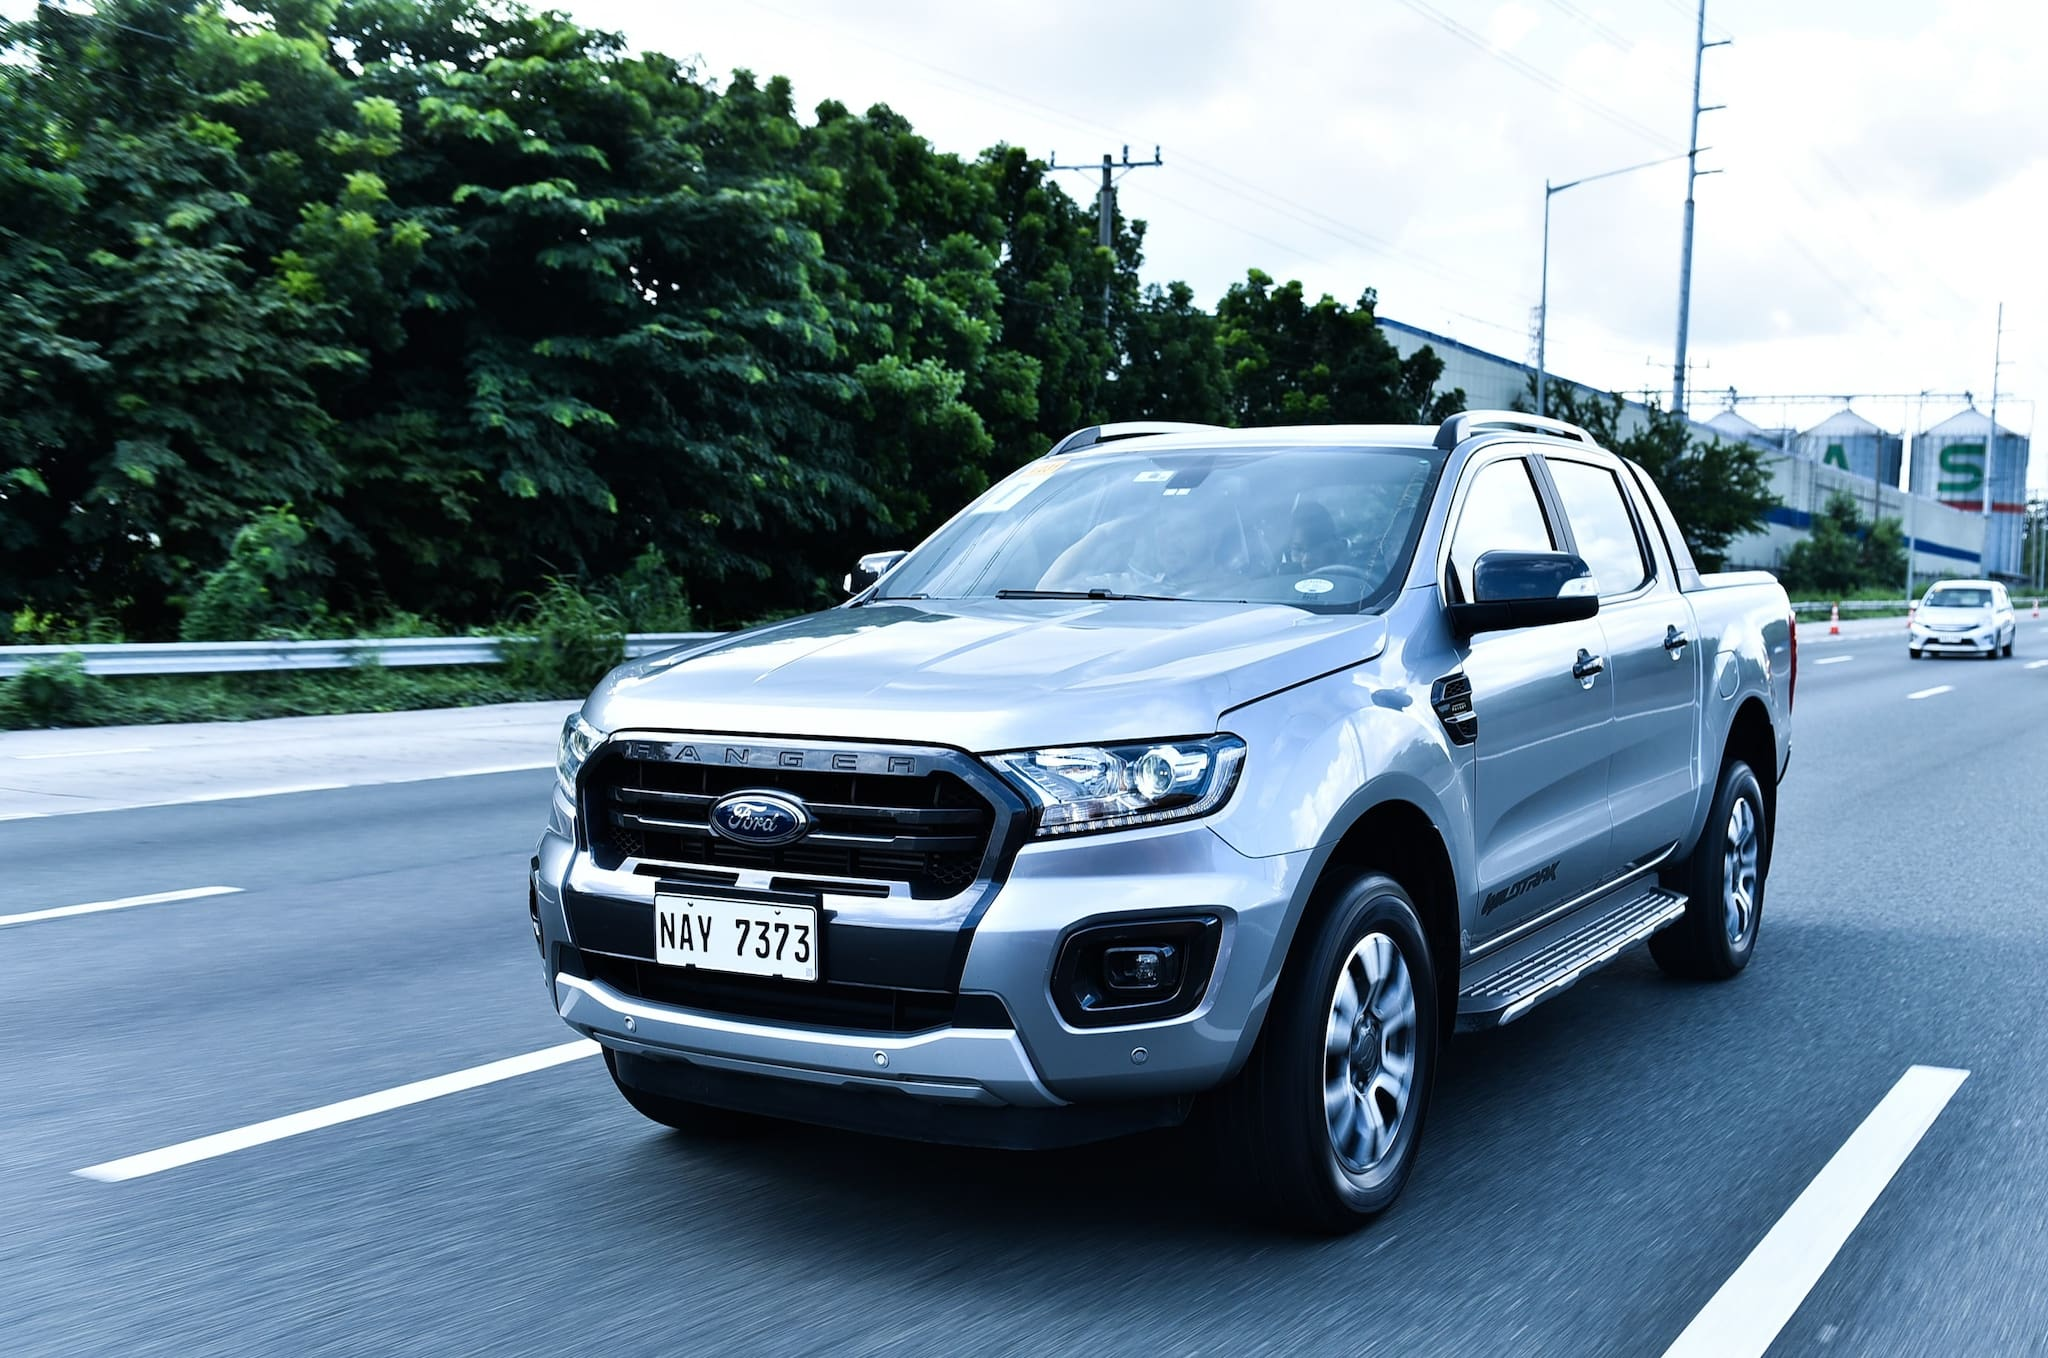 Ford Ranger Drives Ford PH's Second Quarter 2019 Sales with Record Quarterly Performance